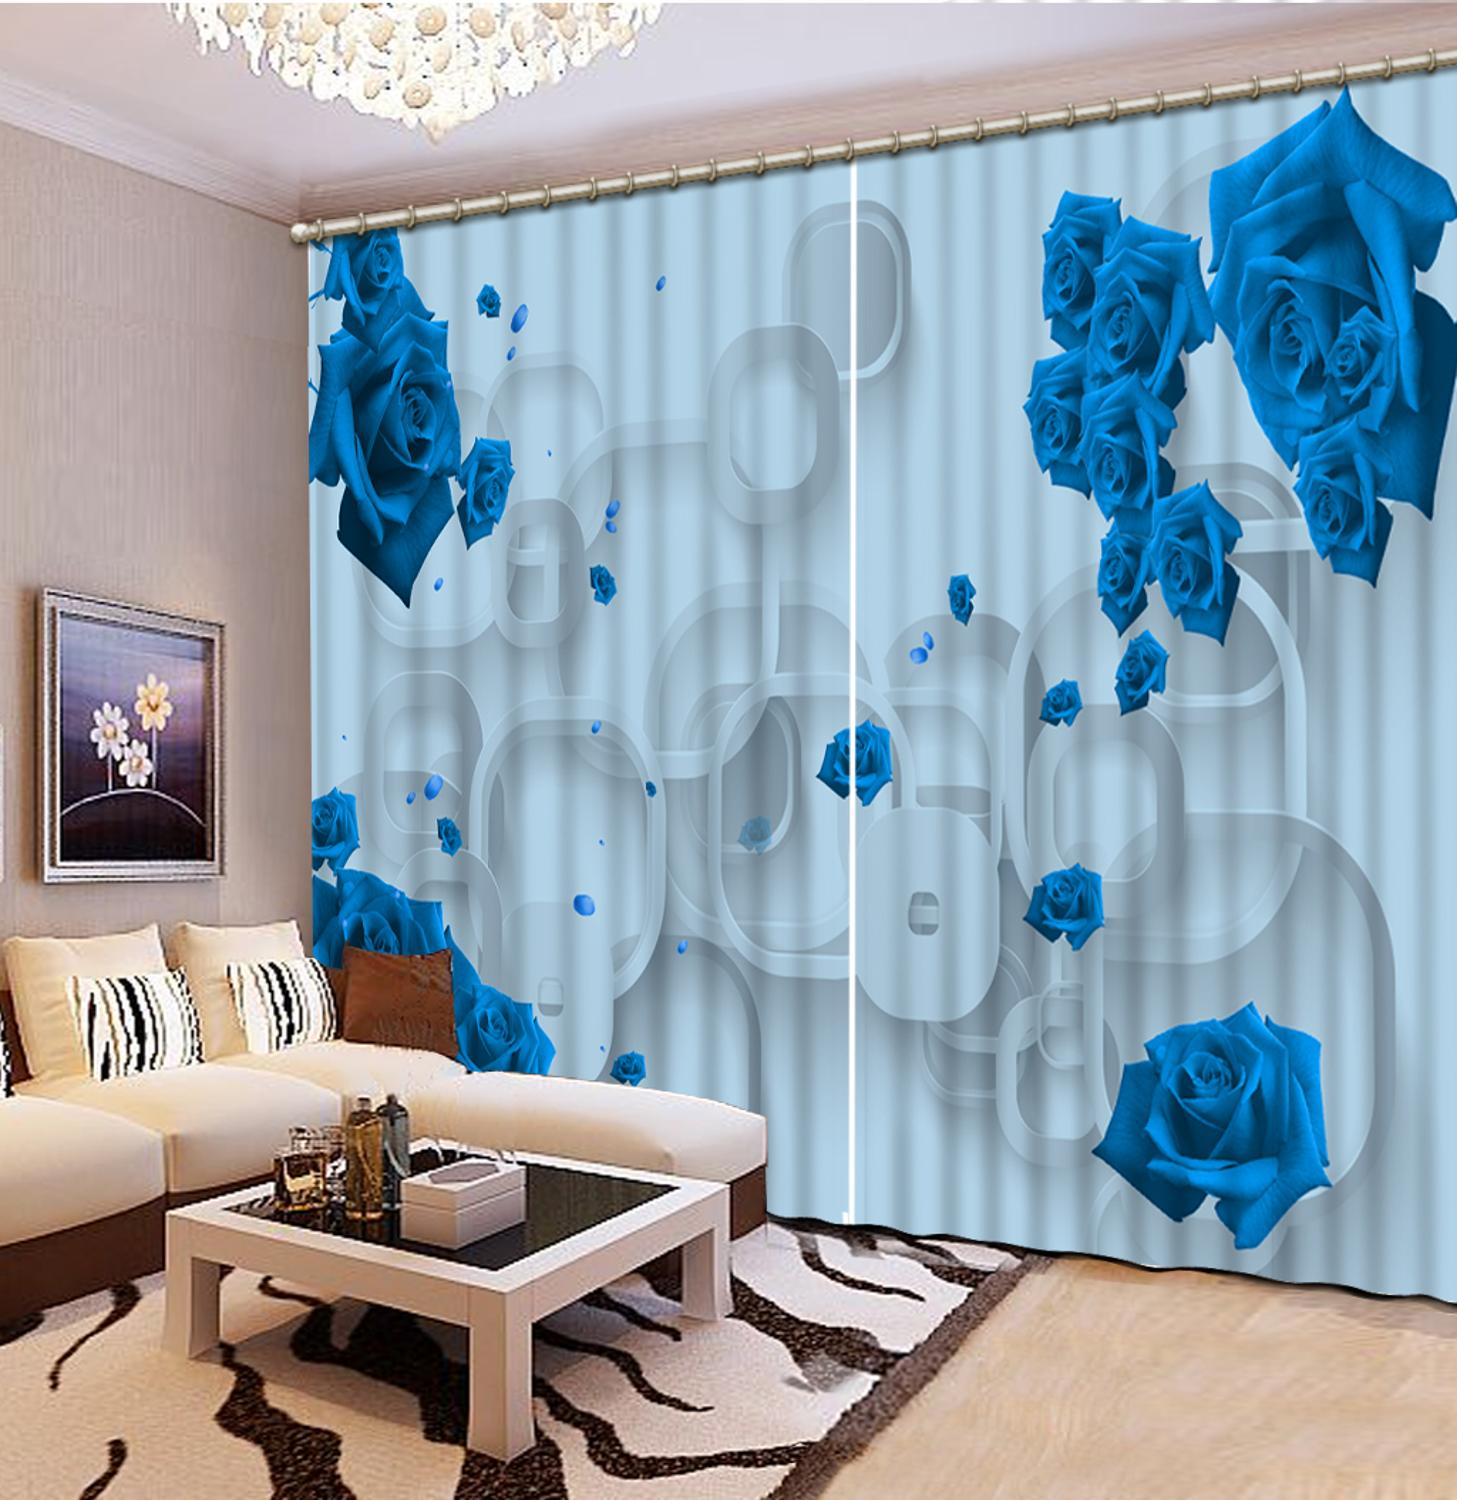 Modern Kitchen Curtain Customize 3D Curtains For Living Room Circle Flower Window Curtain Children Room